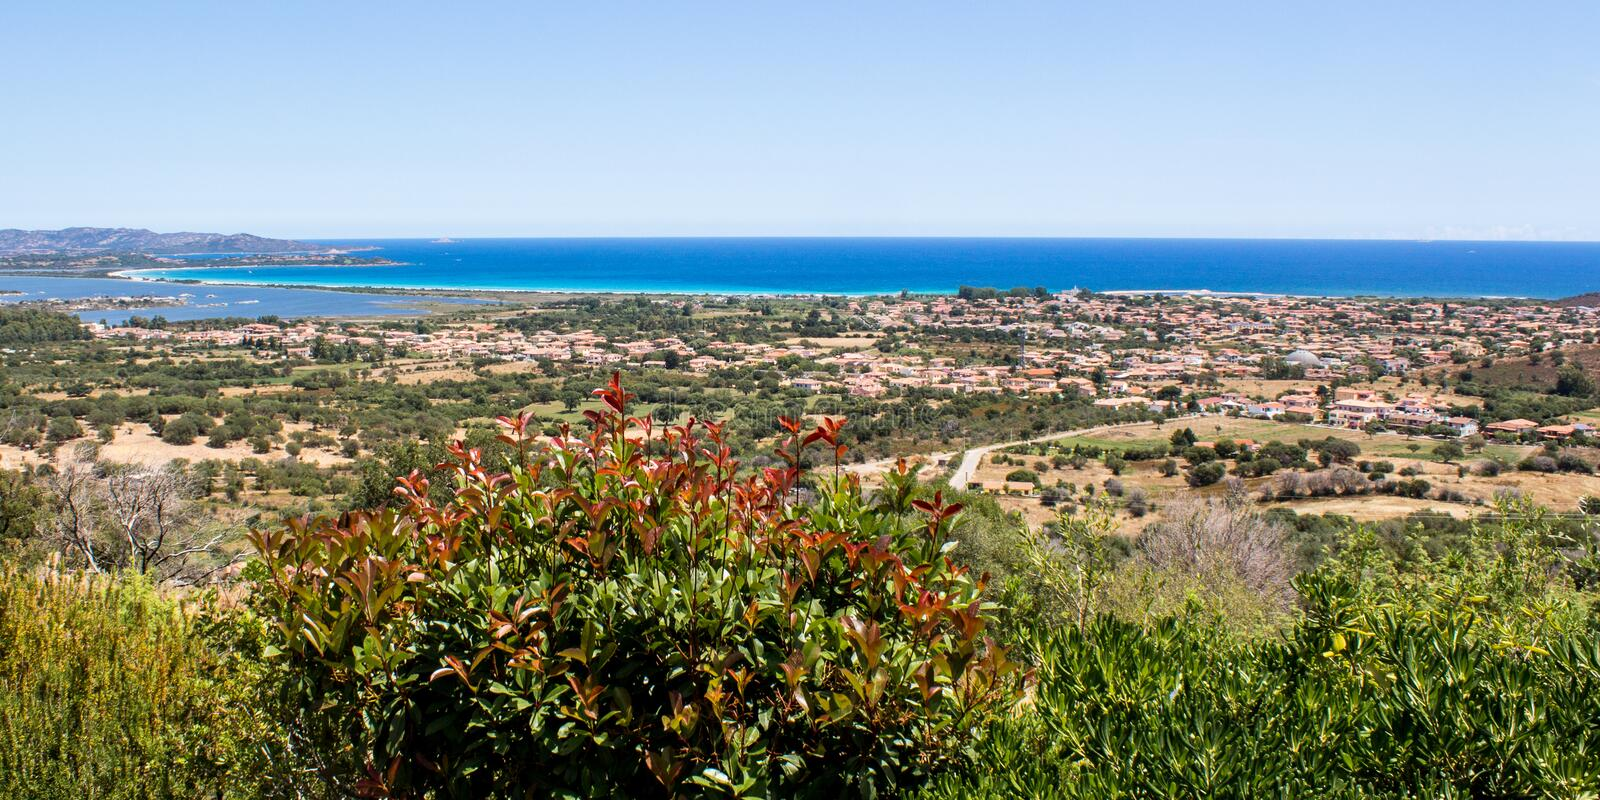 Cityscape of San Teodoro with a view of the coast in Sardinia, I royalty free stock image